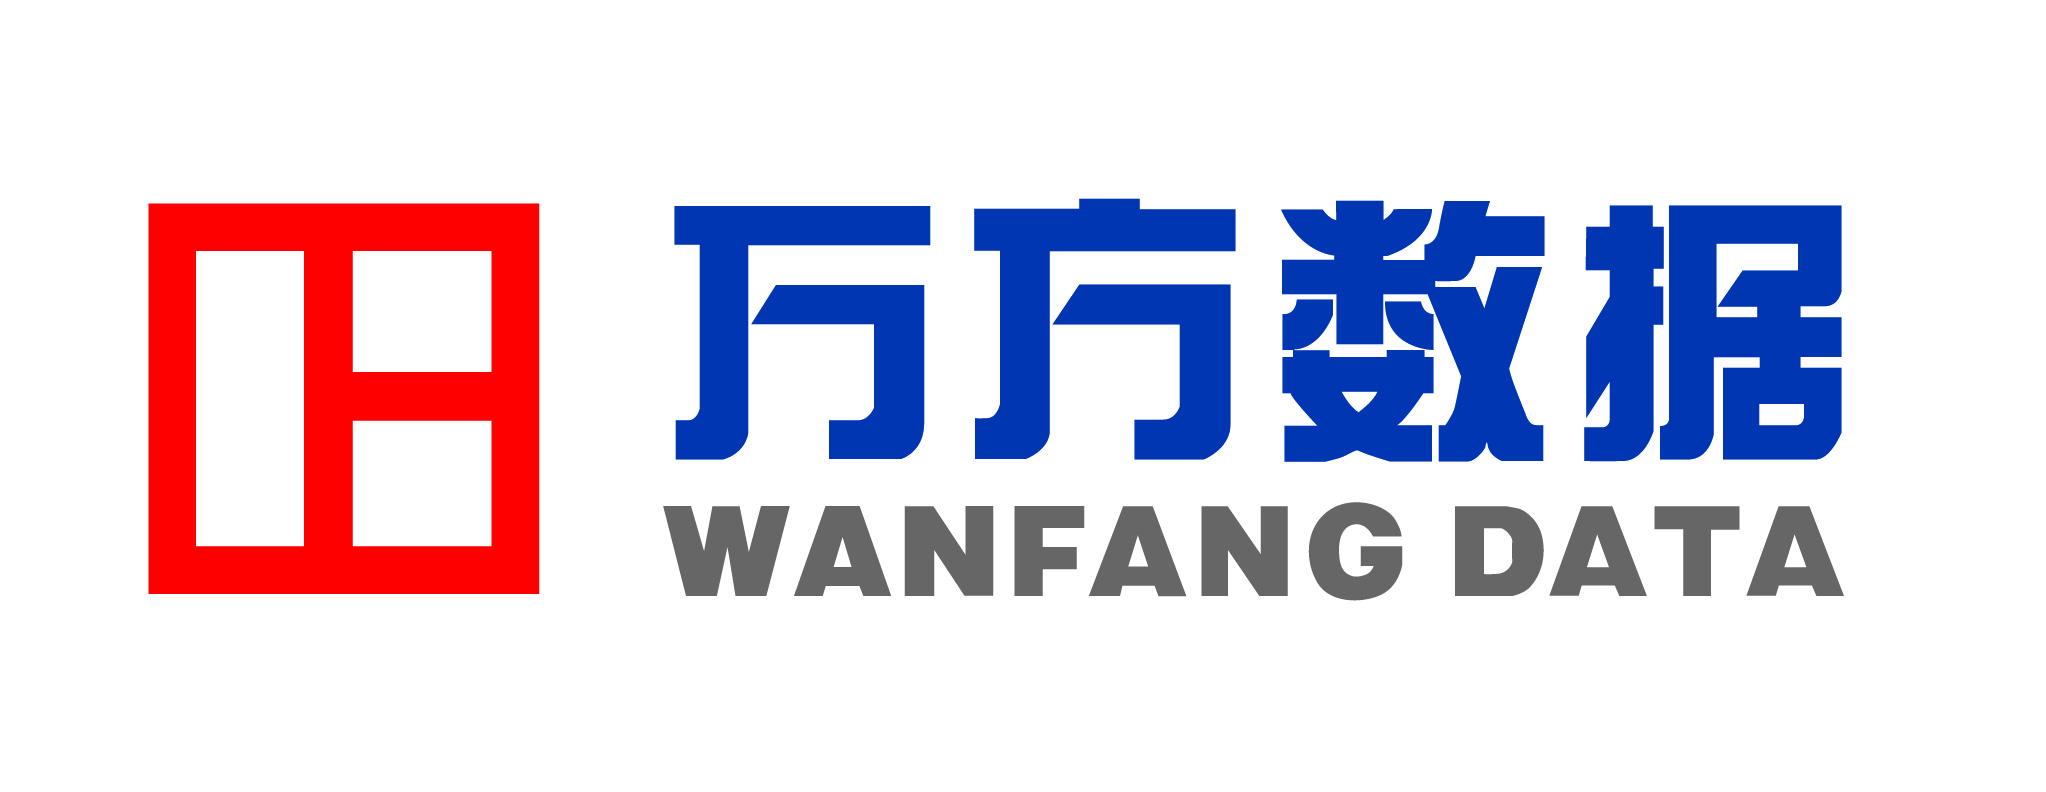 Image result for wanfang data